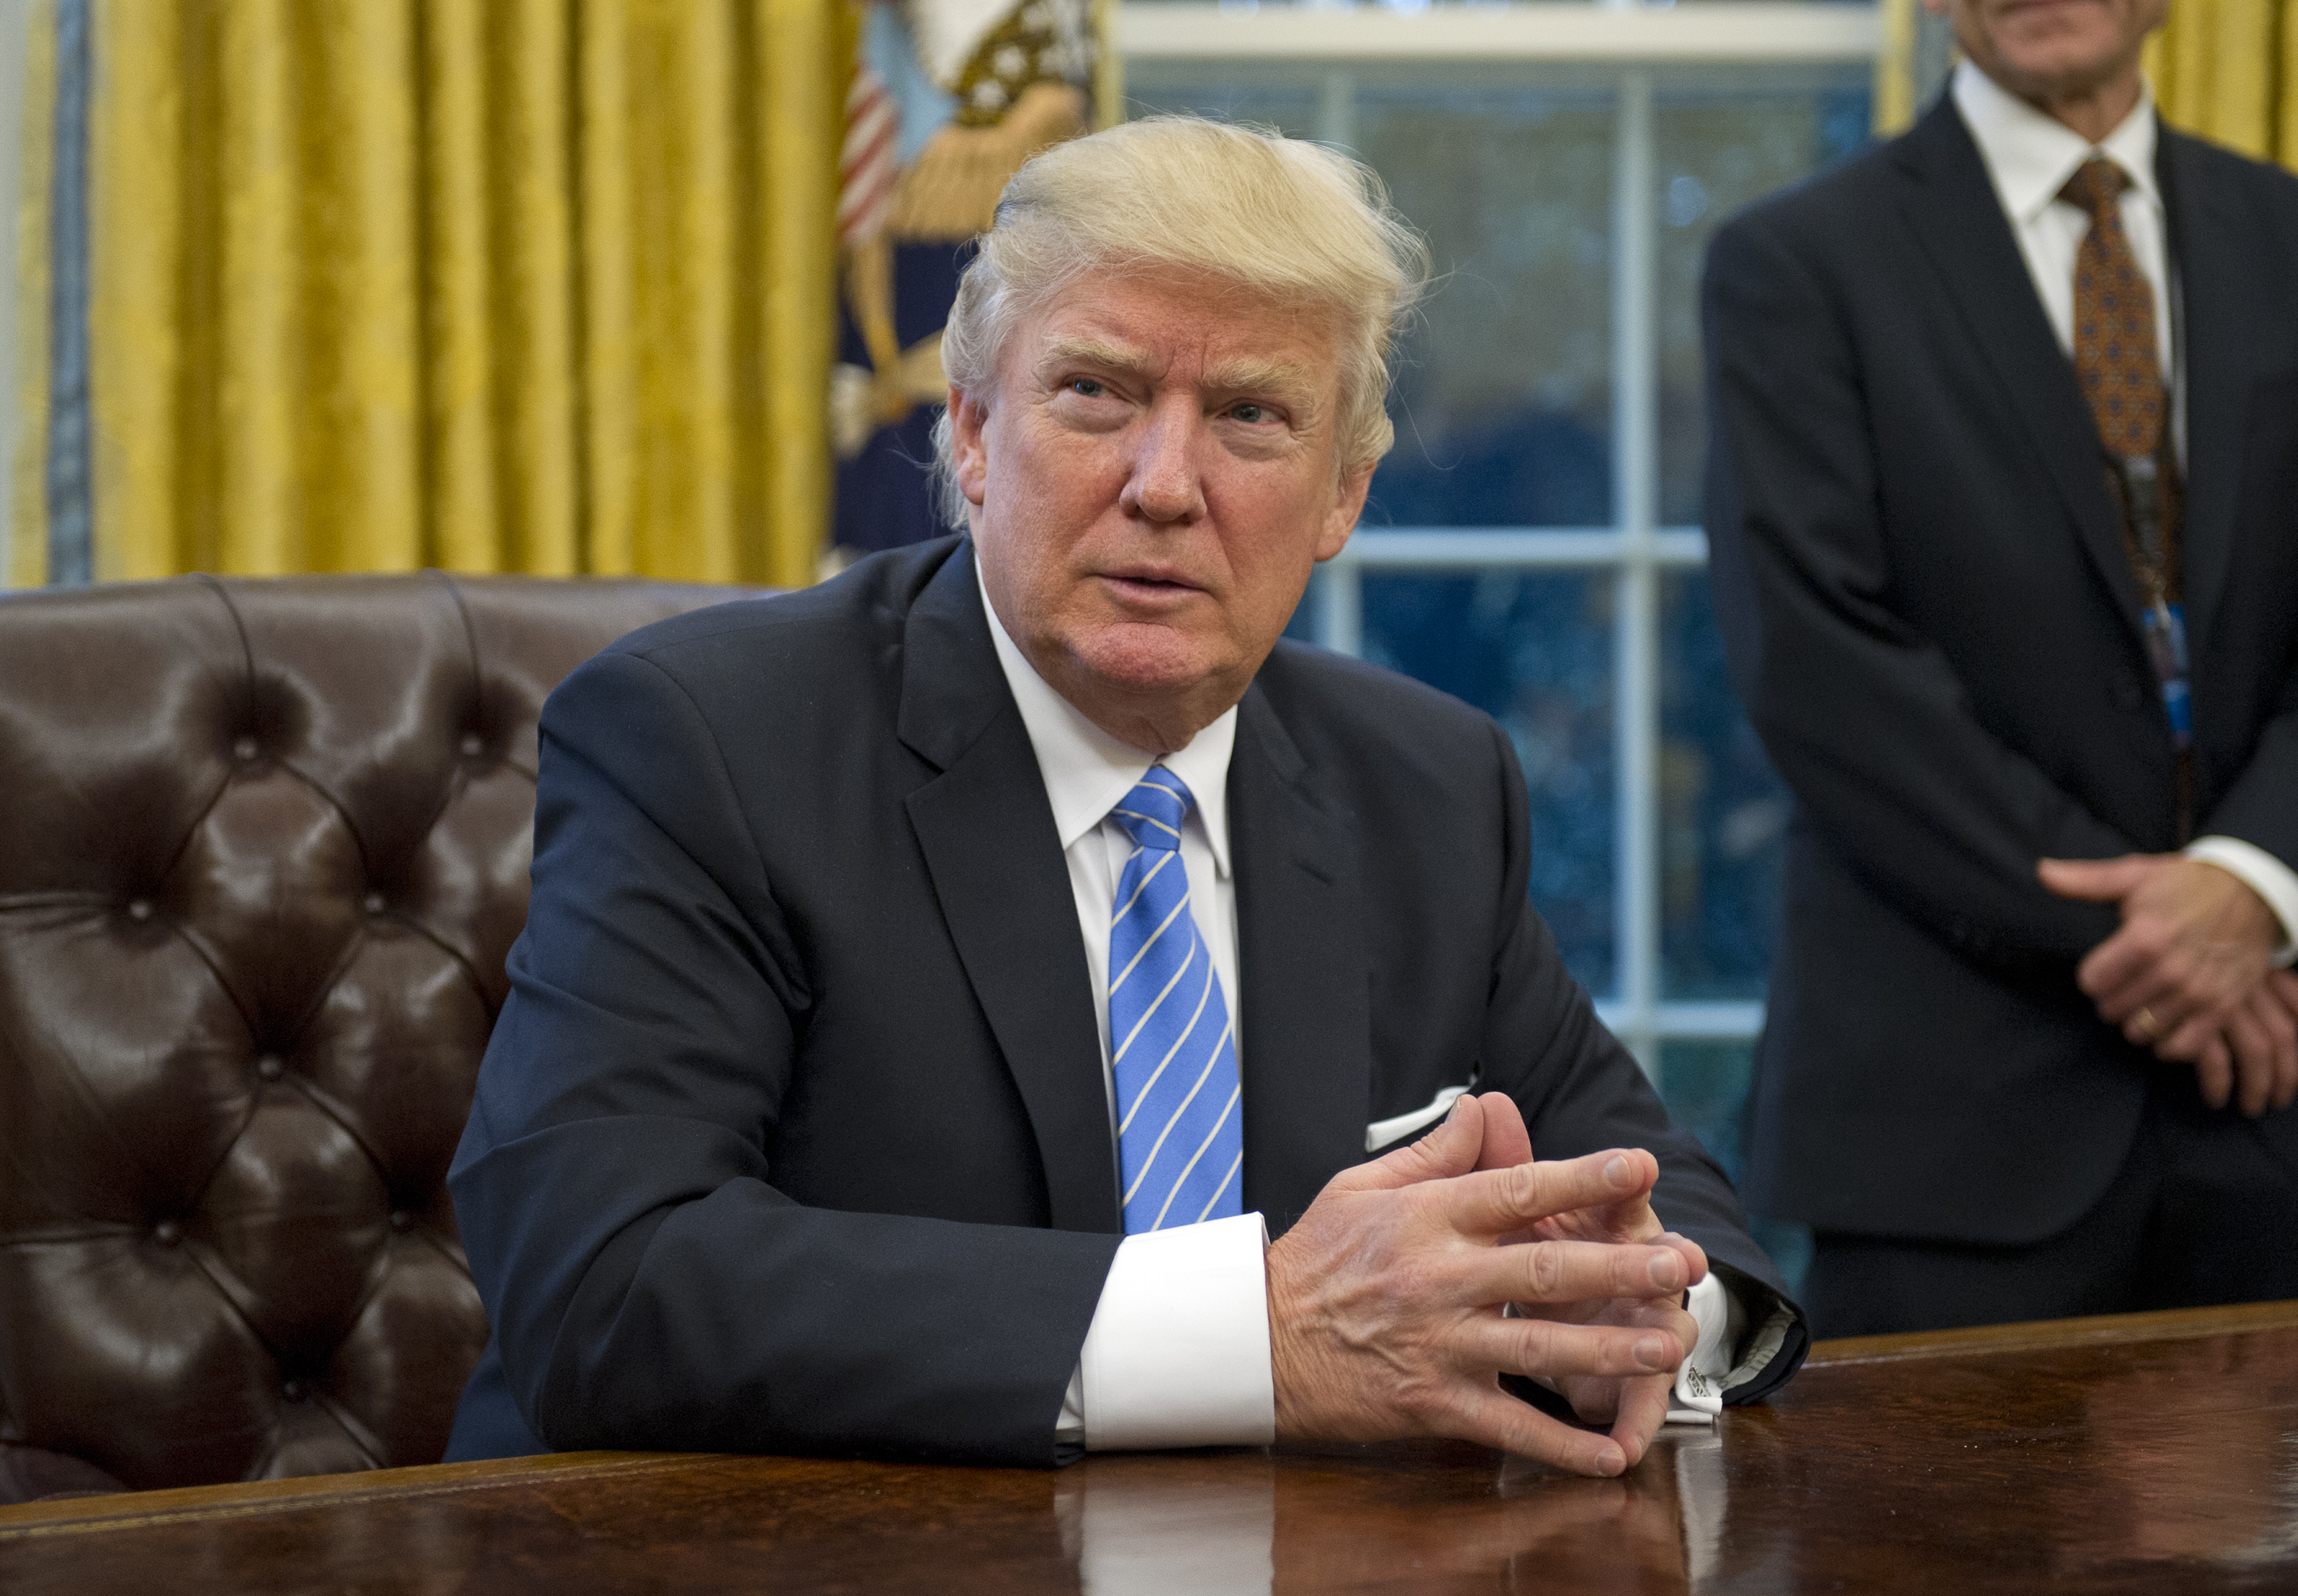 President Donald Trump in the Oval Office of the White House in Washington, D.C. on January 23, 2017.